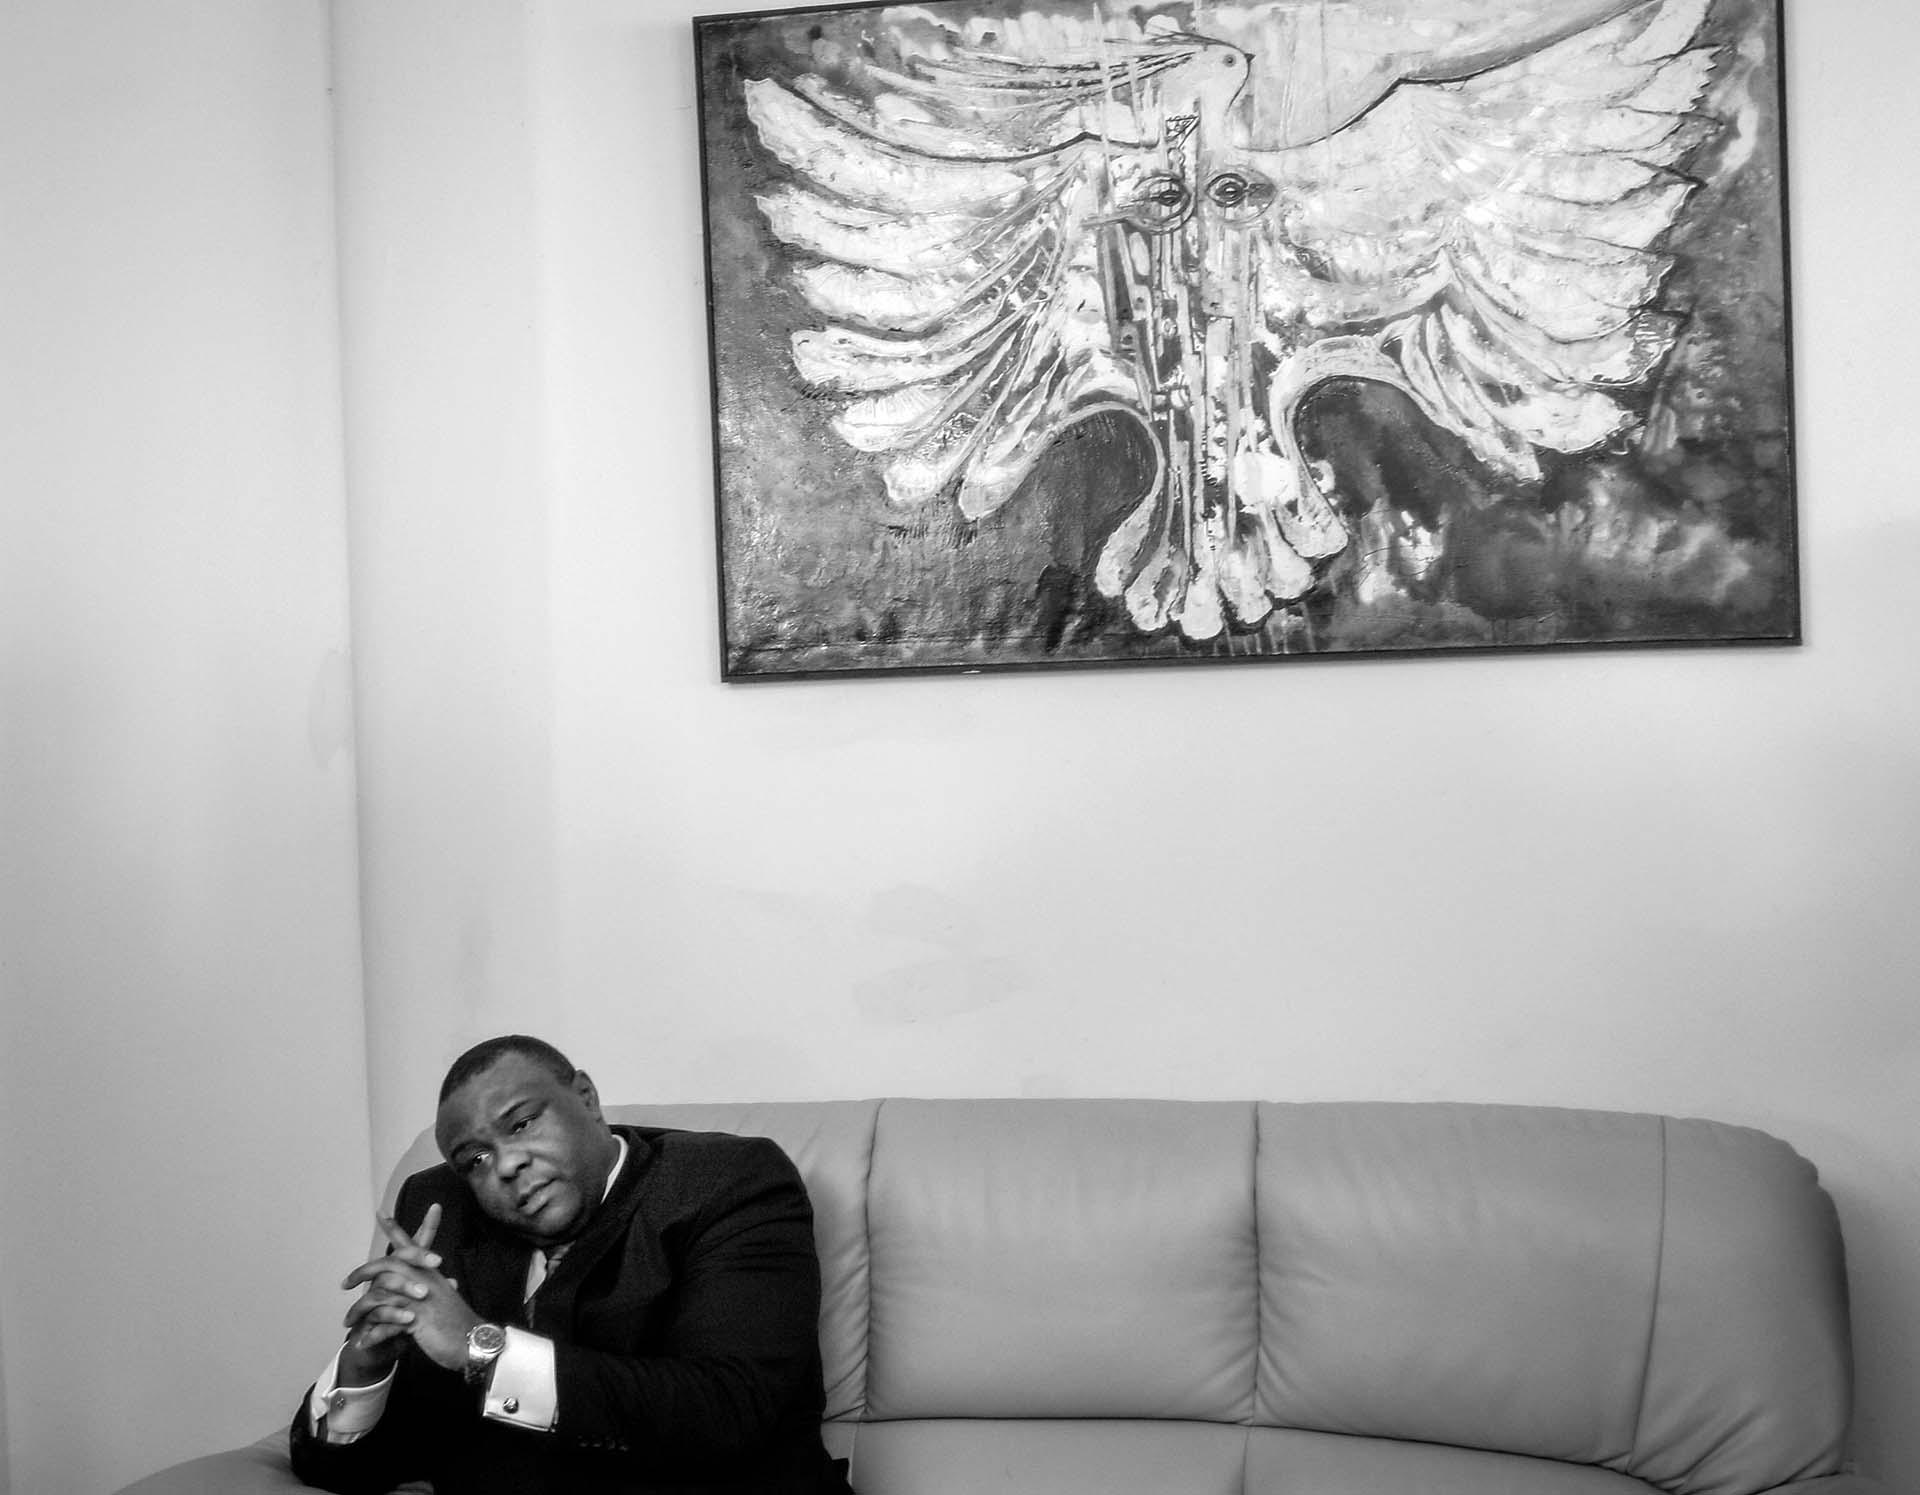 Jean Pierre Bemba, then vice president, former warlord, and presidential candidate, at his office in Kinshasa, after losing his bid to the Presidency. He was convicted in 2016 for failing to prevent his militia from committing crimes against humanity in the CAR that included murder, rape, and pillaging. He had been sentenced to 18 years in prison. However he was released after shocking reversal of his conviction by the ICC Appeals Chamber in 2018.